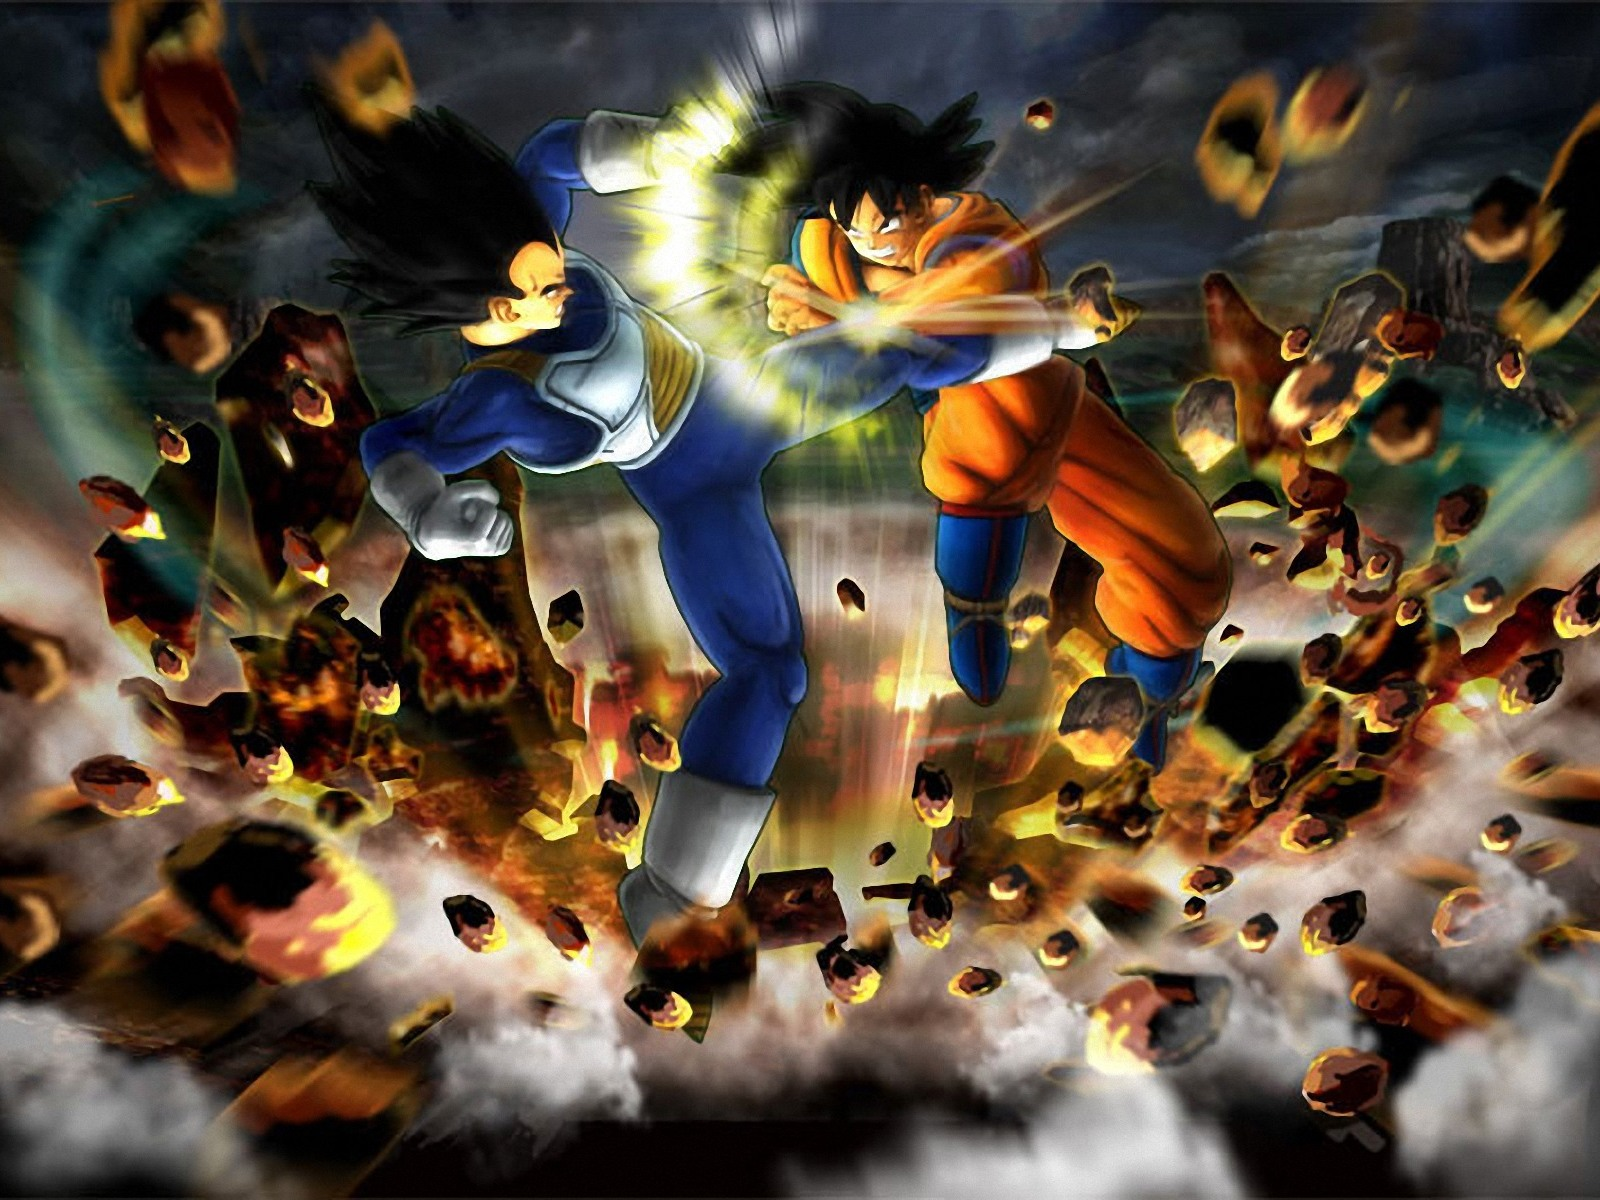 226 2260045 3d wallpapers of dragon ball z